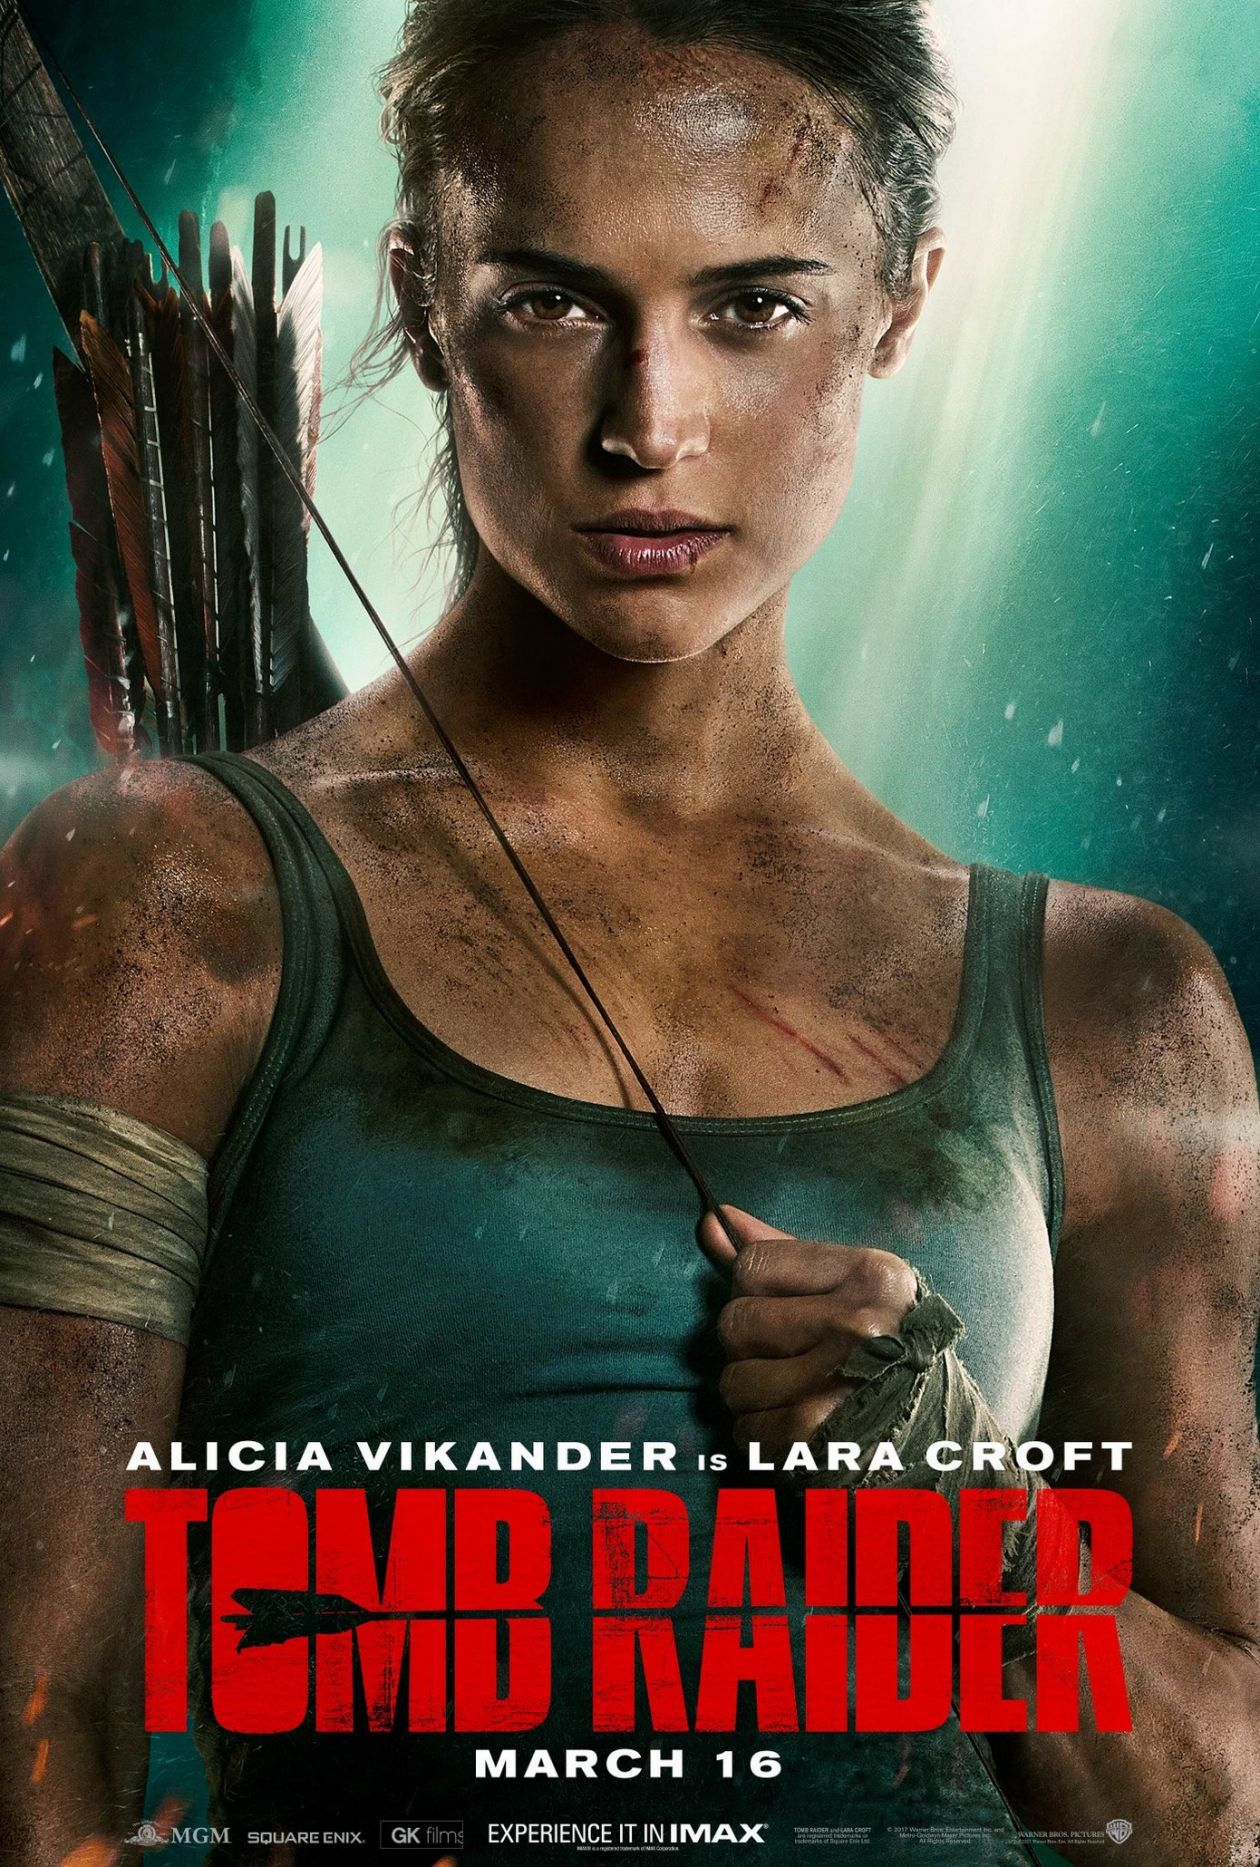 Alicia Vikander actress / Lara Croft / Tomb Raider 2018 Movie Poster / Affiche film